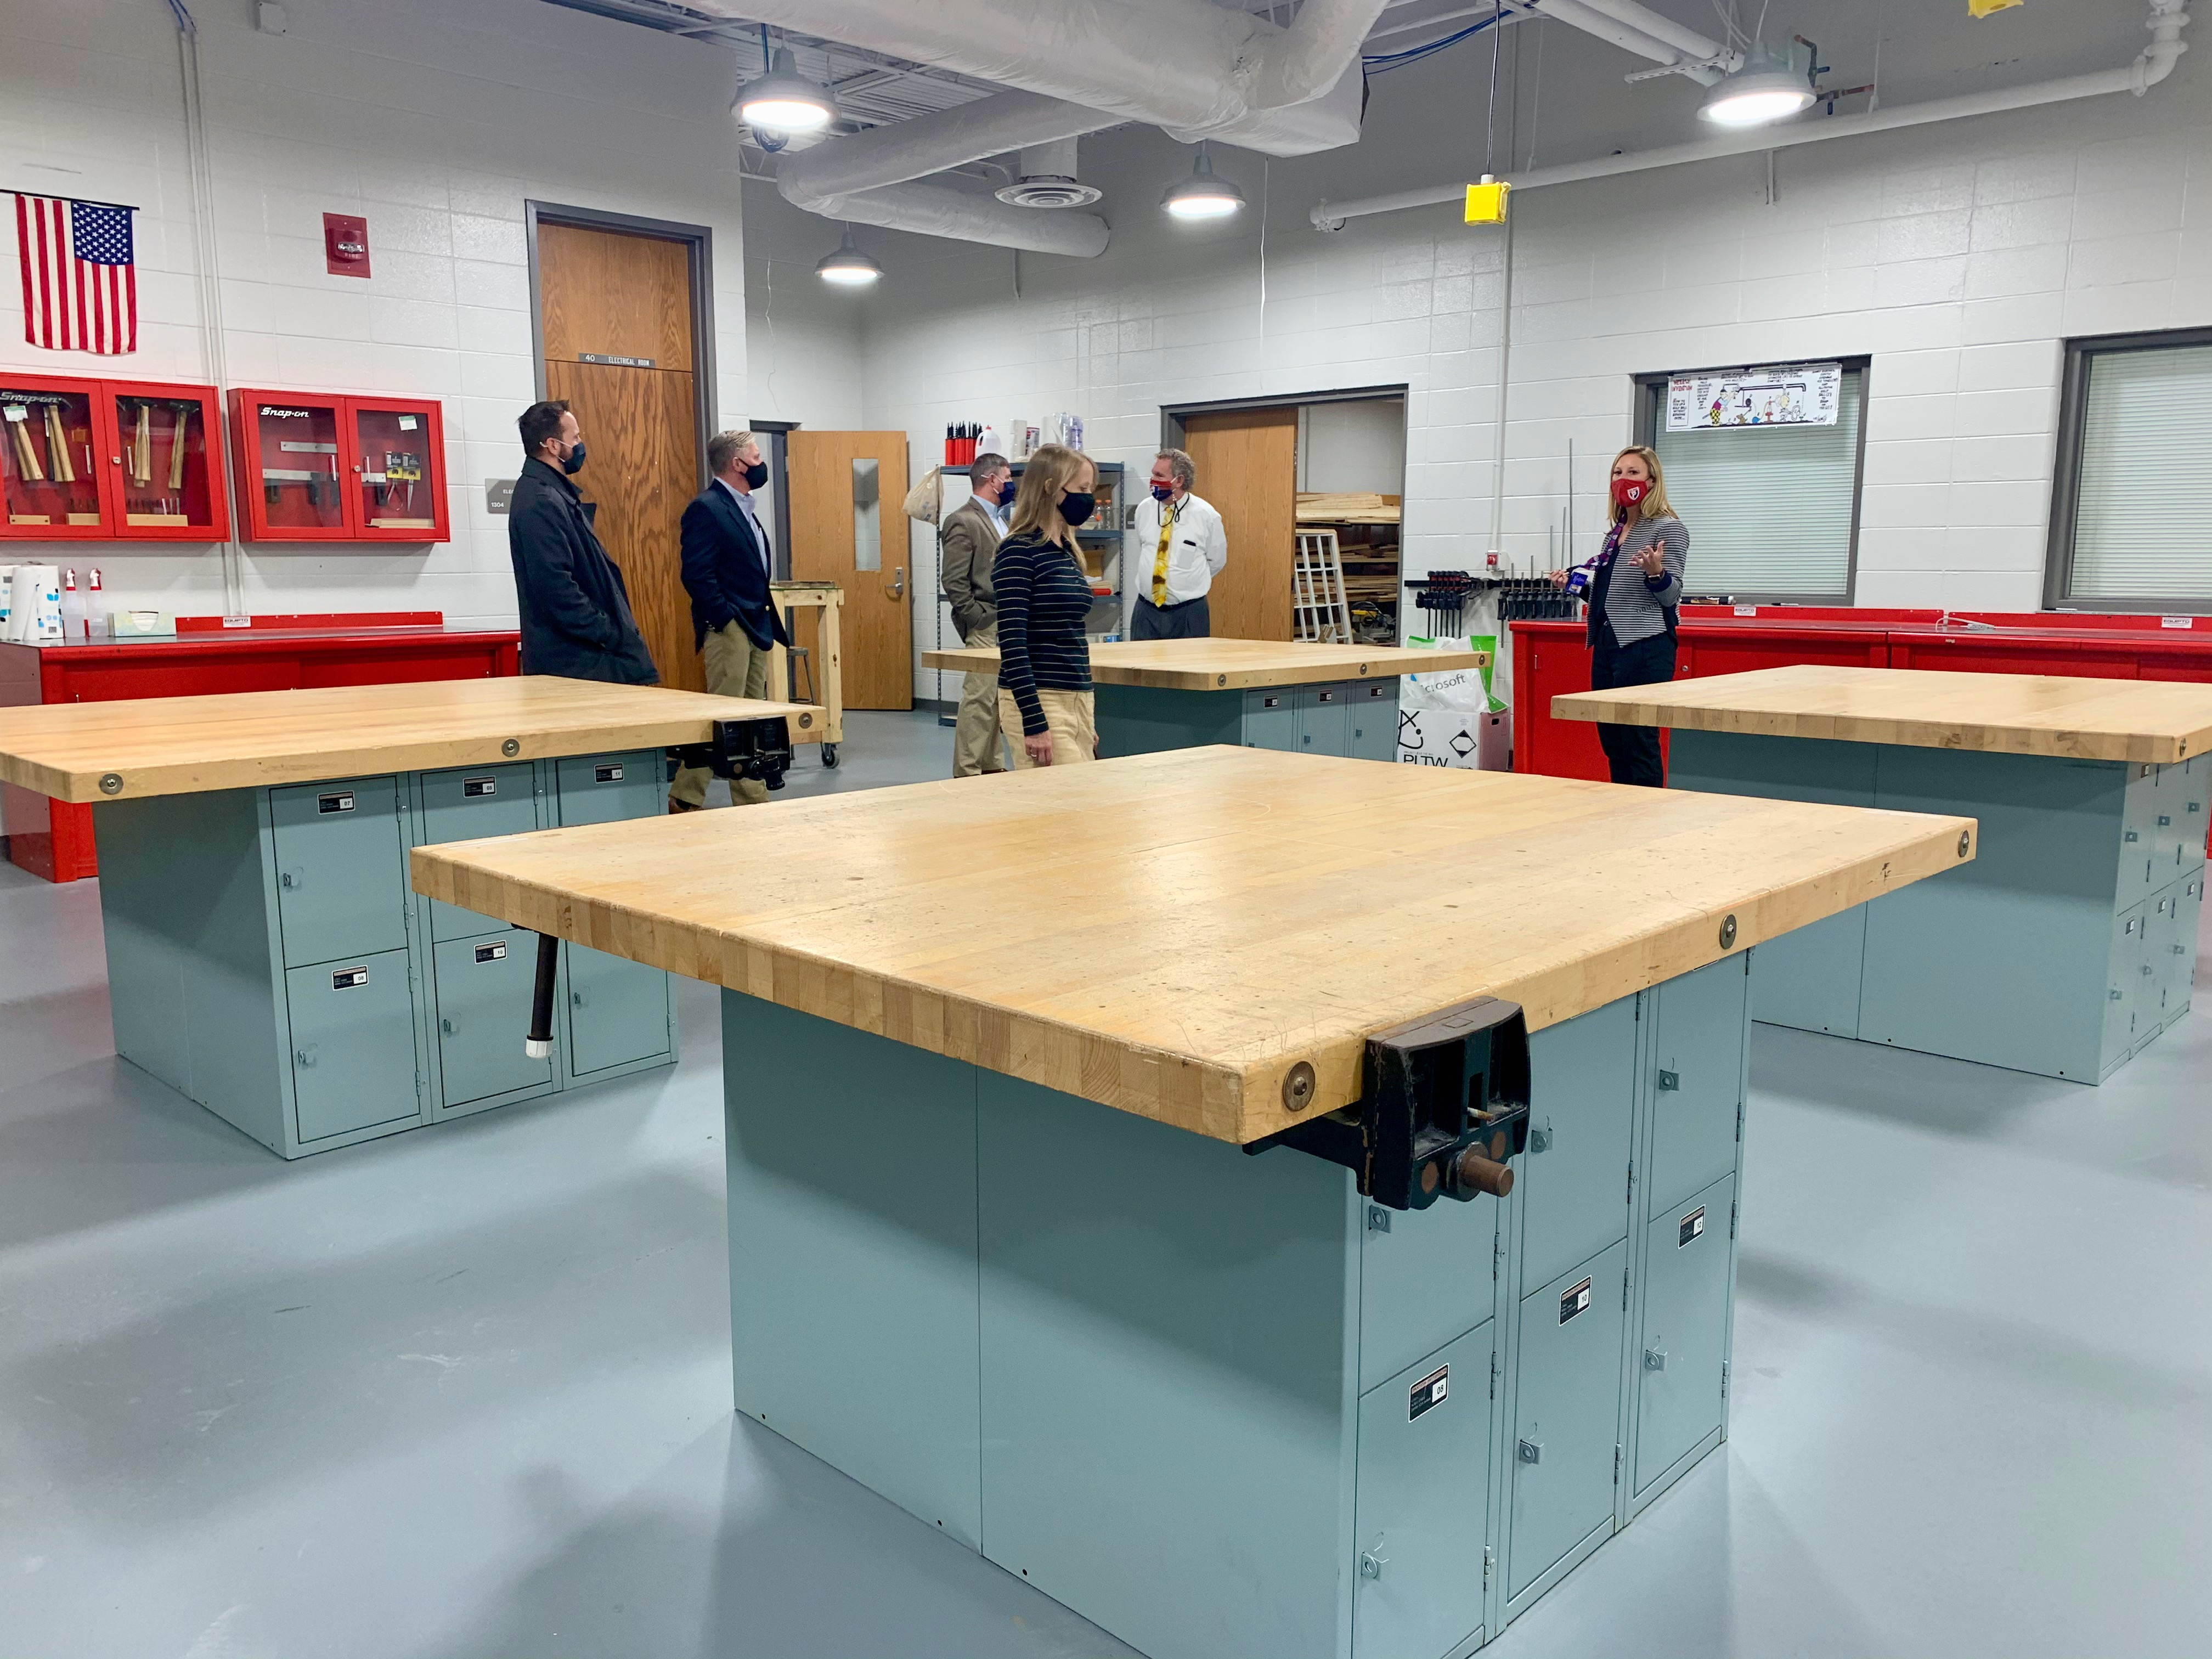 School Board members toured the PCMS renovations this Fall, including this lab featuring state-of-the-art equipment.